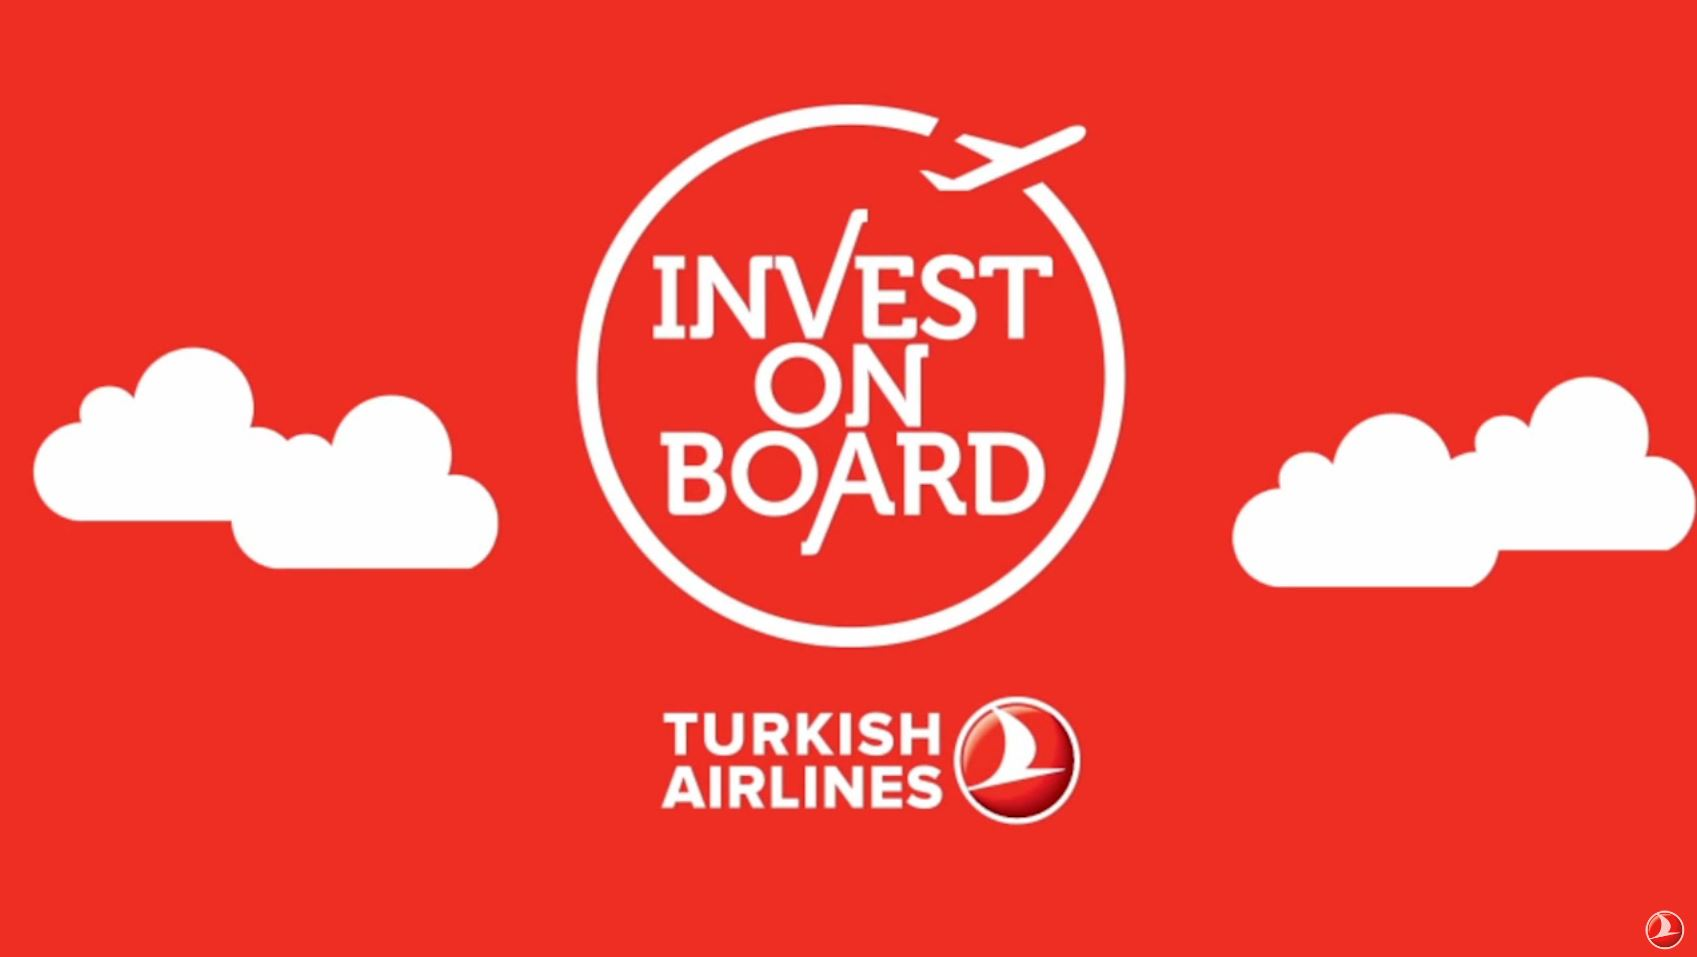 THY_Turkish Airlines_invest on board_gec 2015